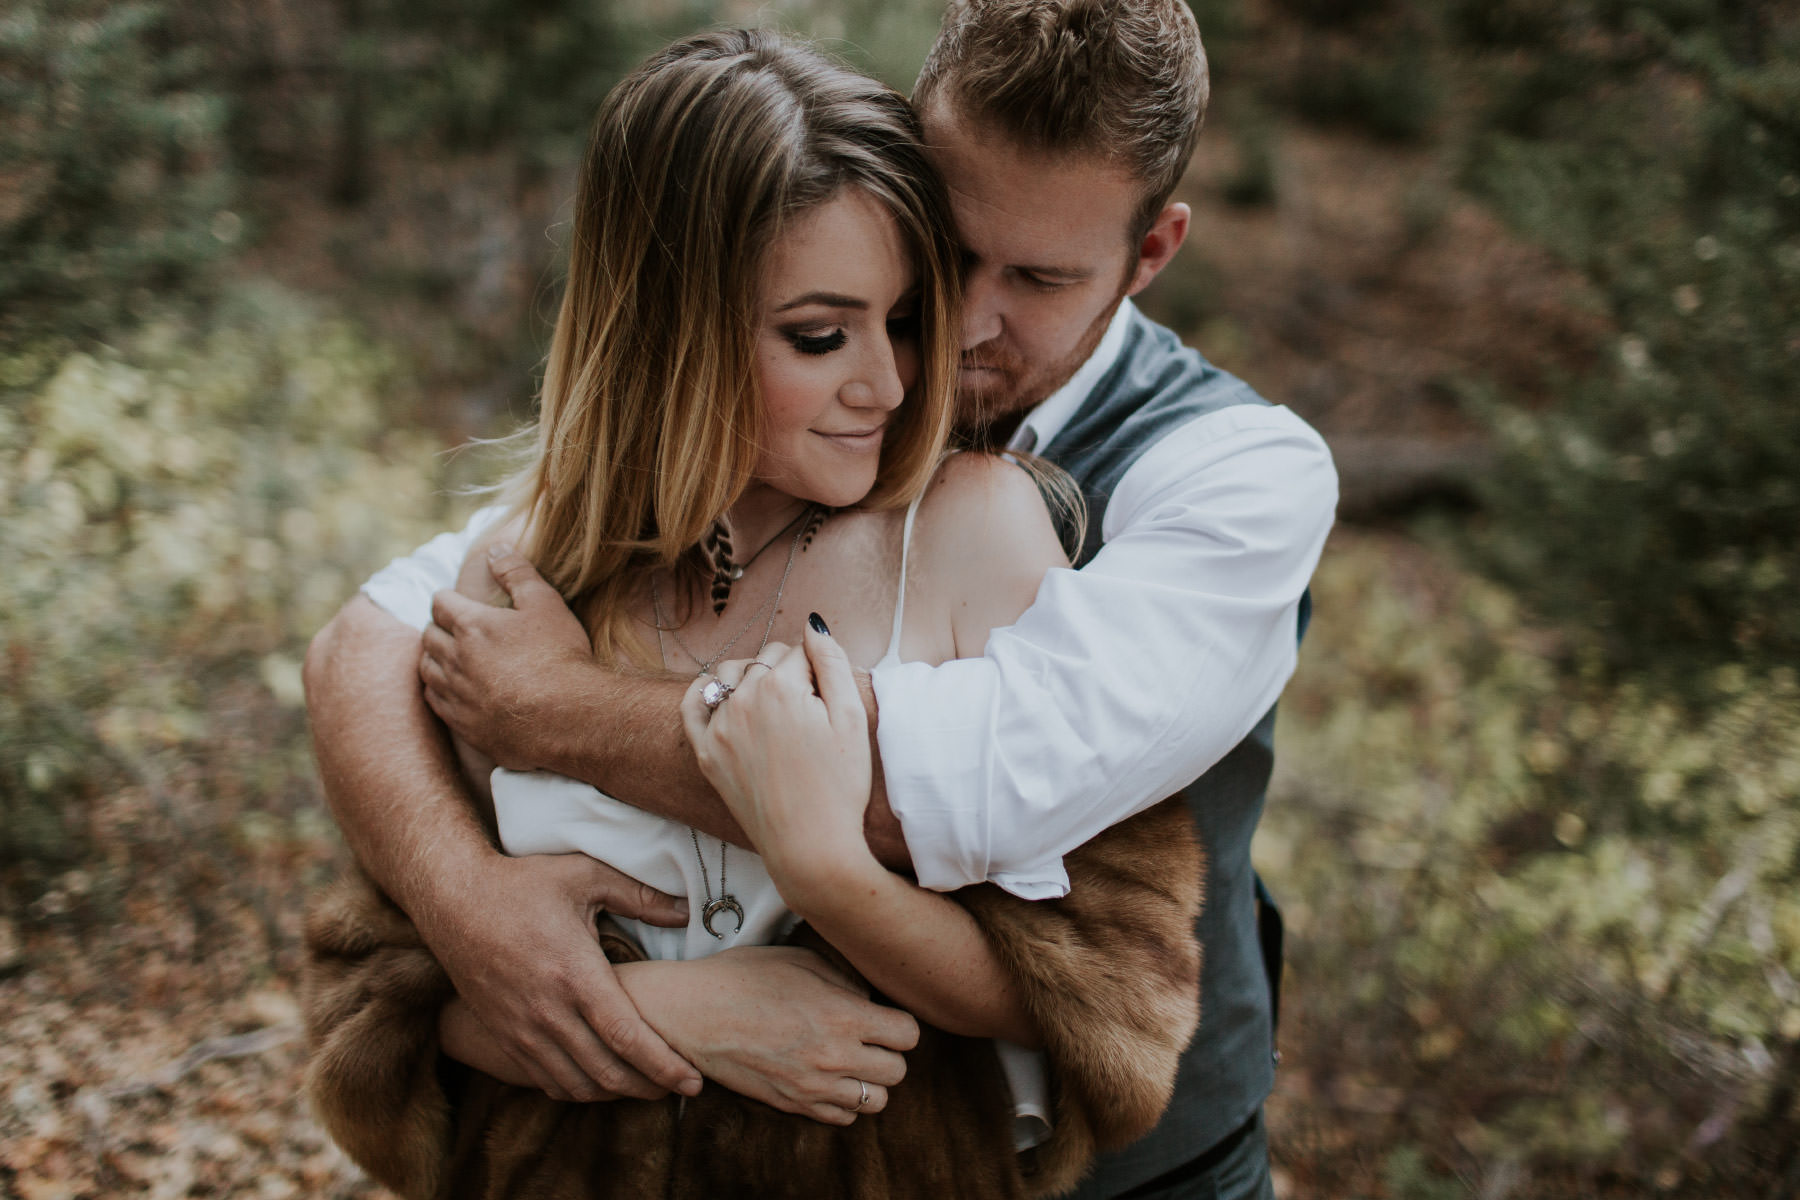 Couple embracing in forest at Palomar Mountain